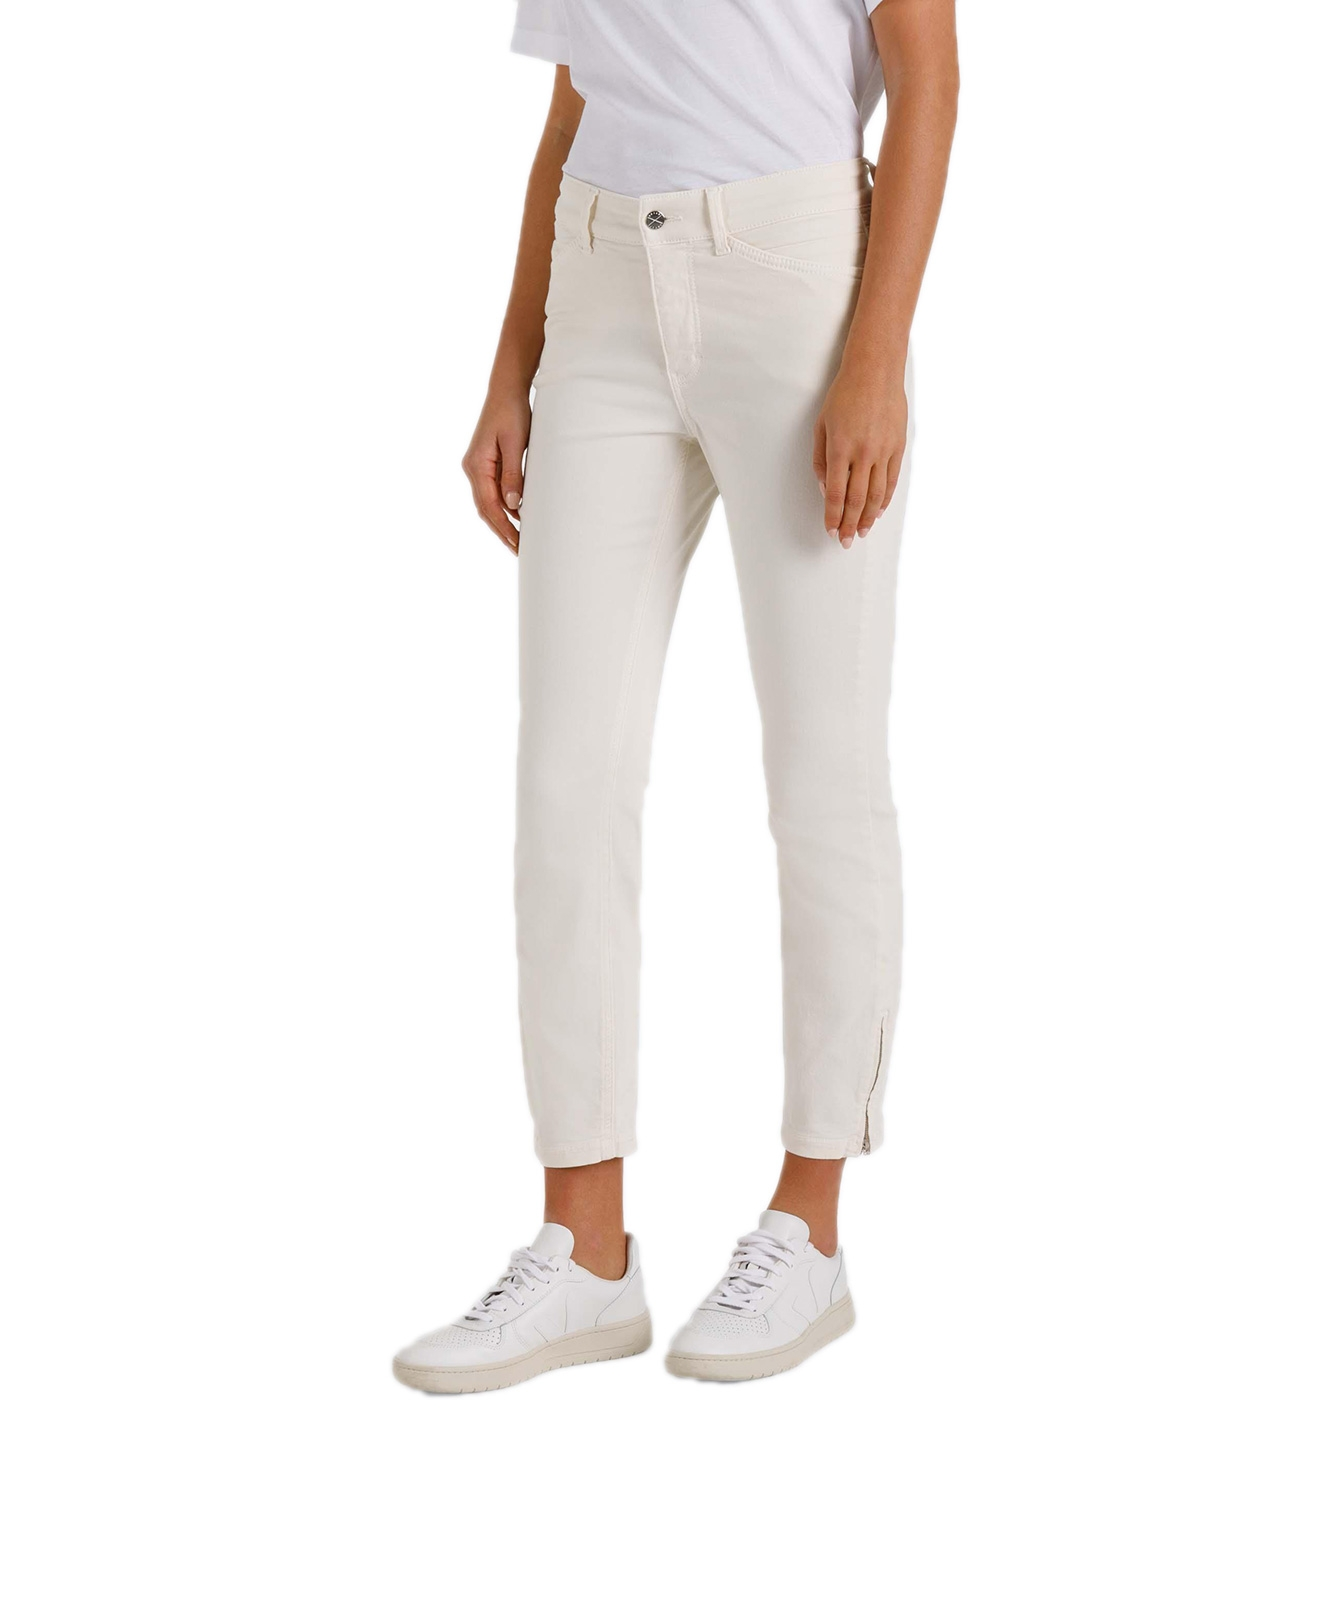 Hosen - MAC Ankle Jeans Dream Chic in Marshmallow  - Onlineshop Jeans Meile